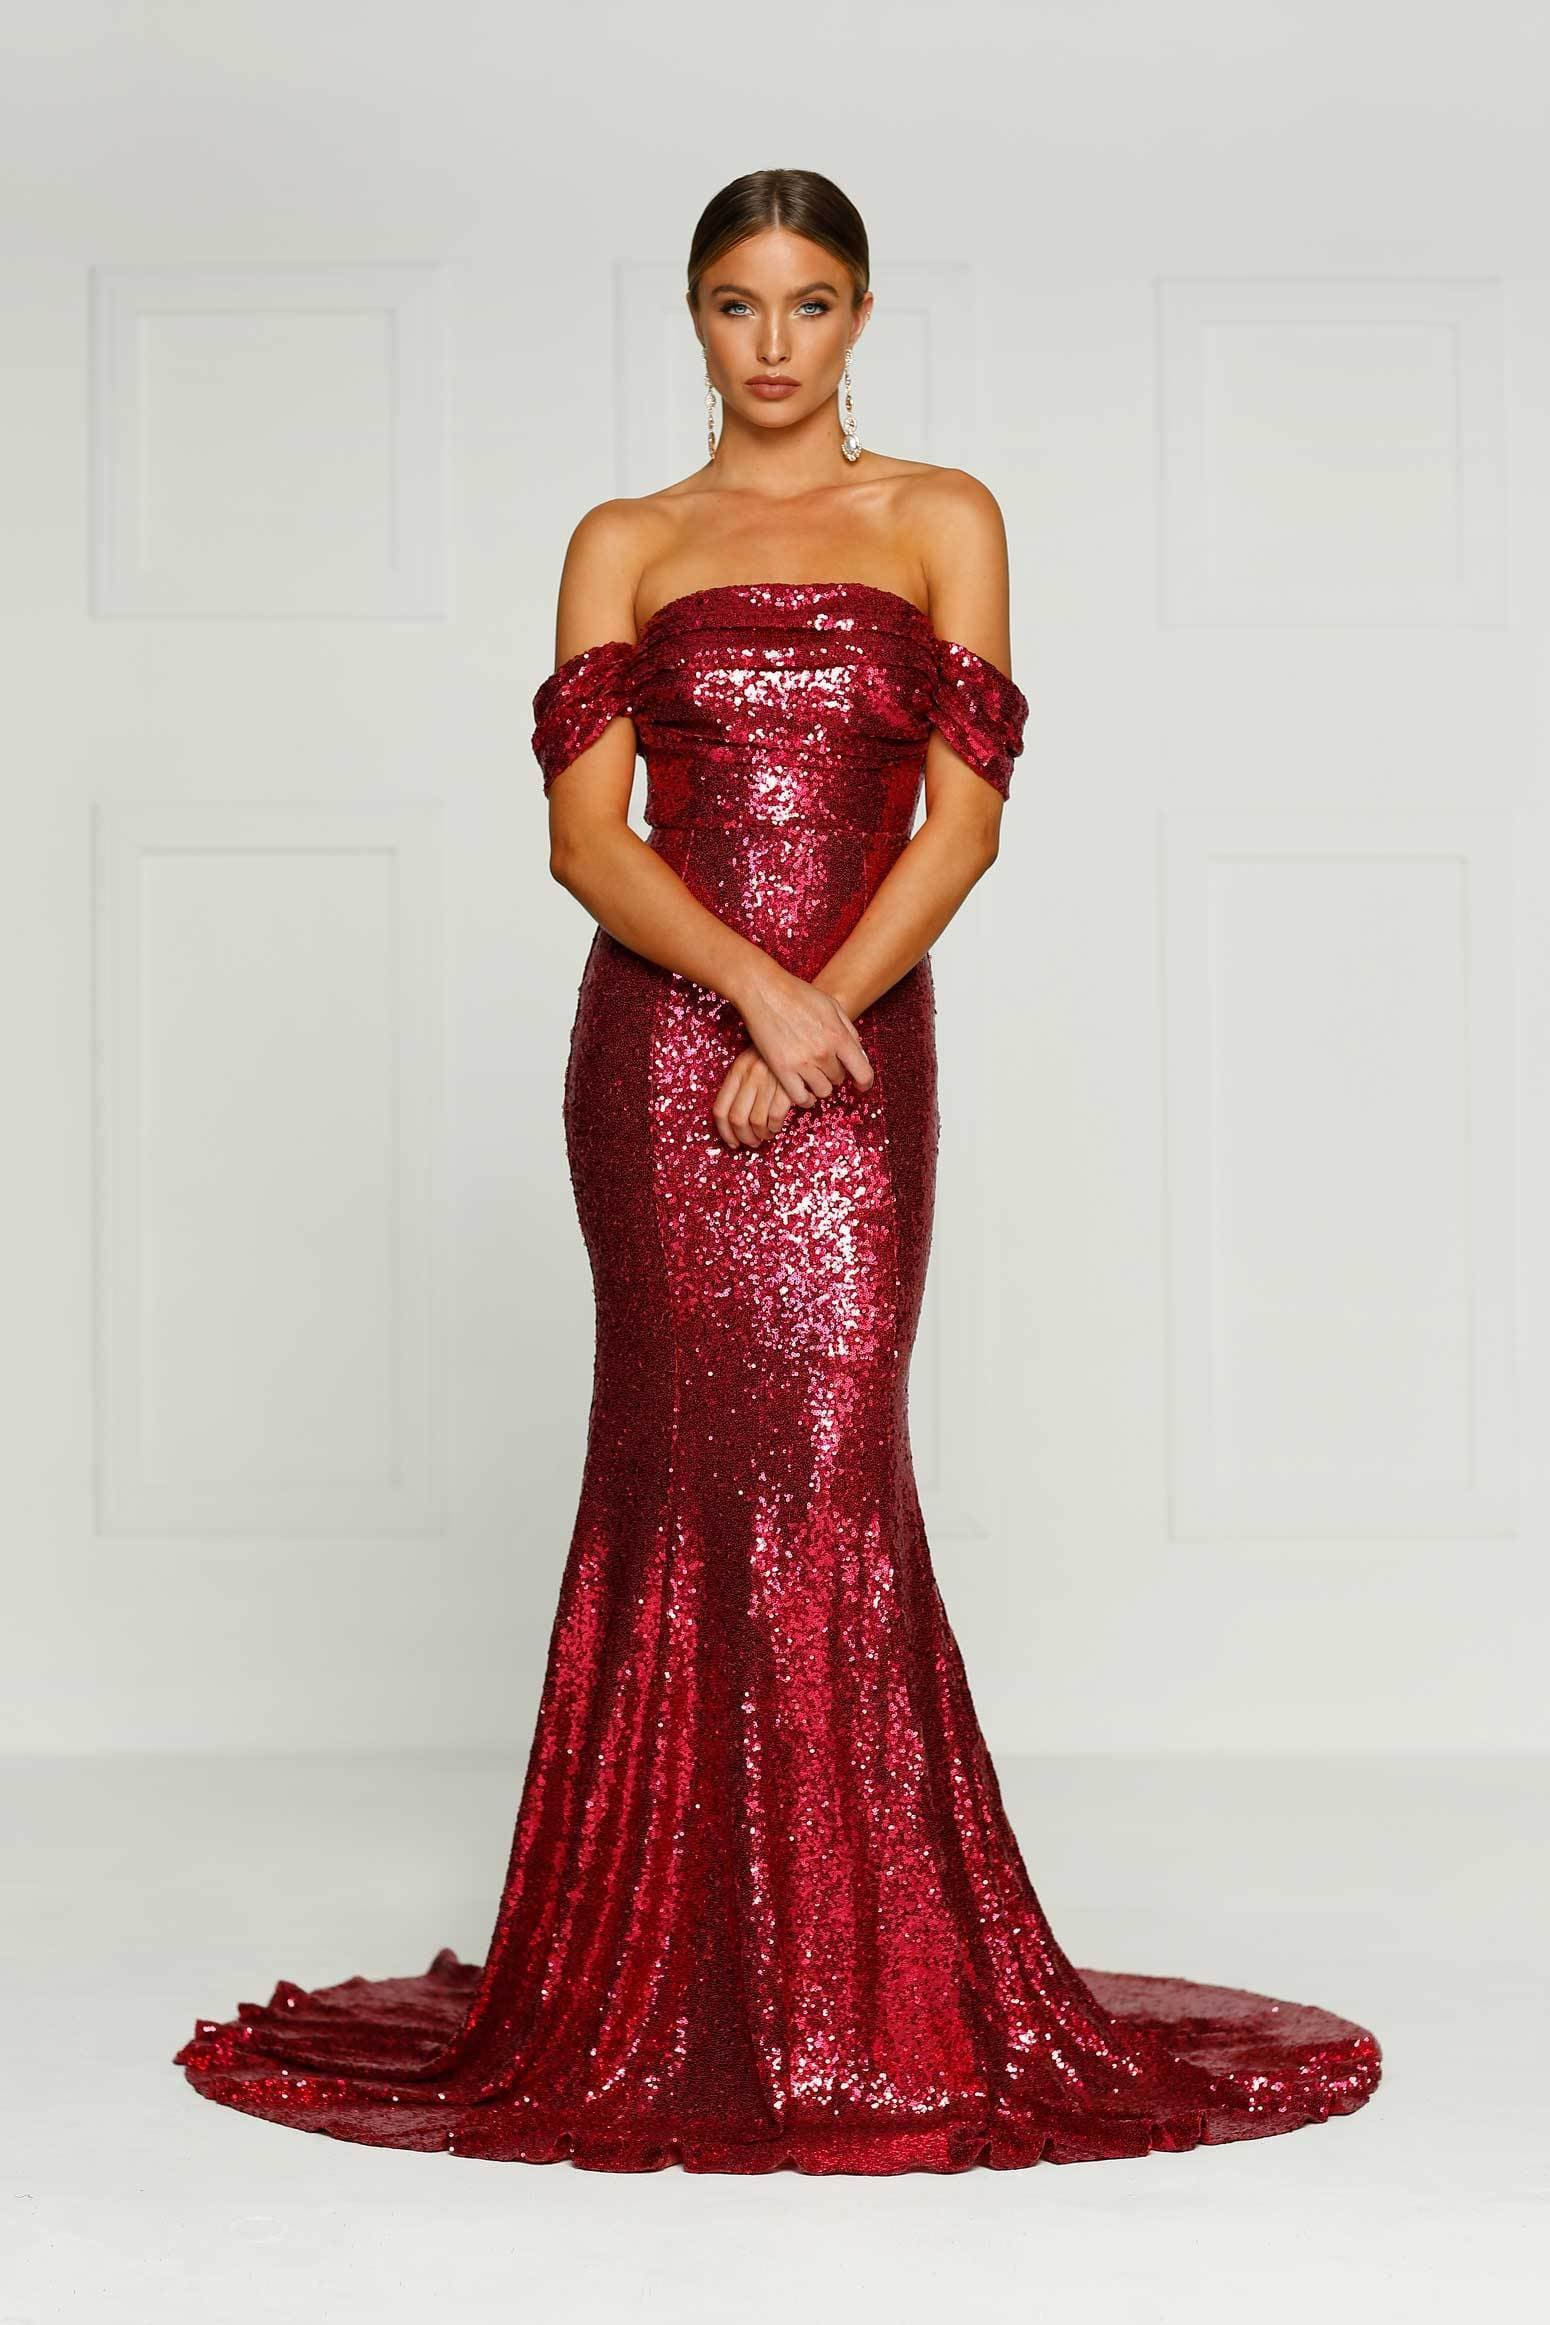 Silicya - Wine Red Sequin Gown | Off-Shoulder Drapes & Mermaid Train